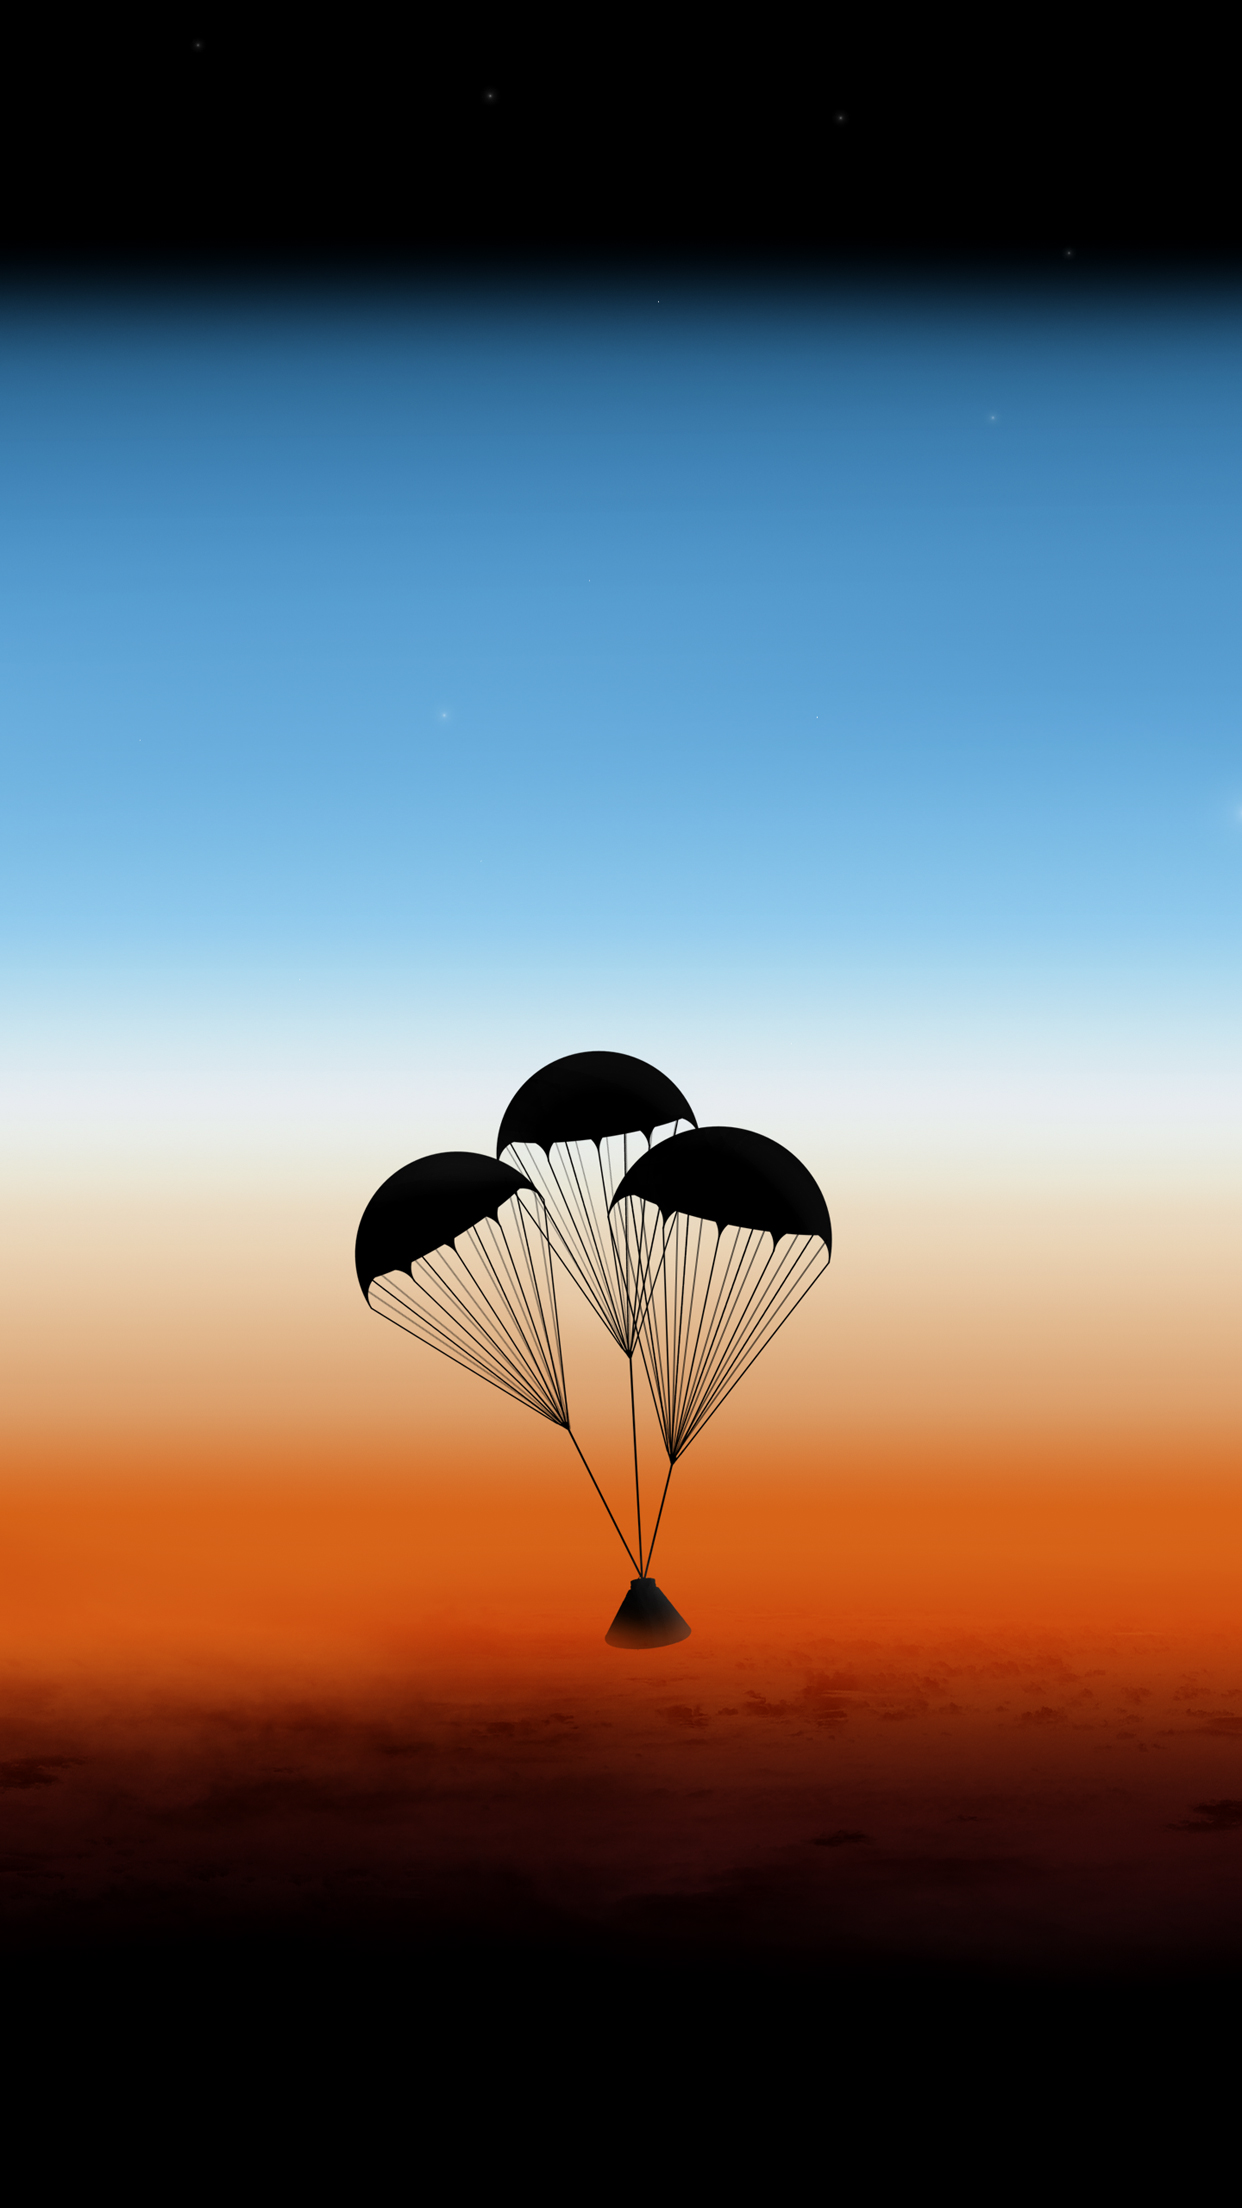 Orion Capsule re-entering the atmosphere